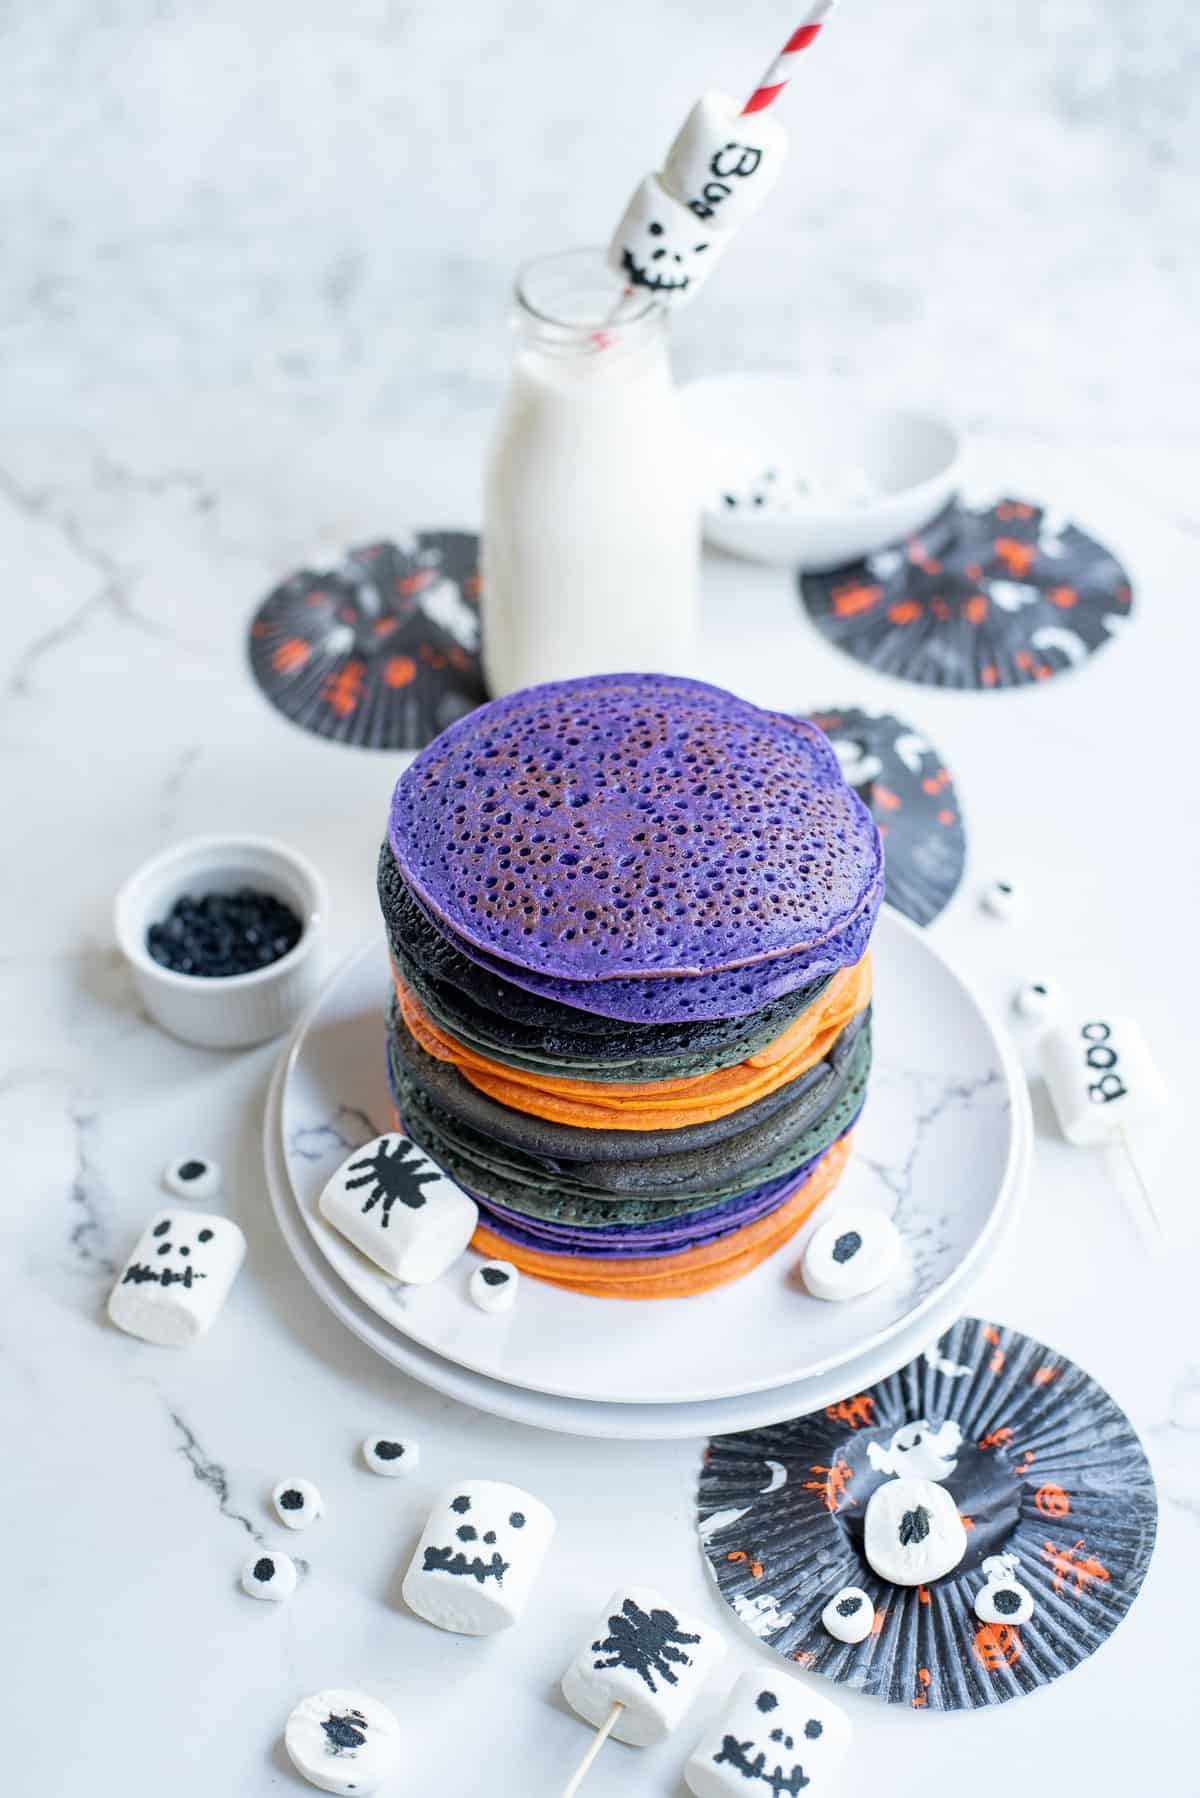 Colorful pancakes with no toppings.